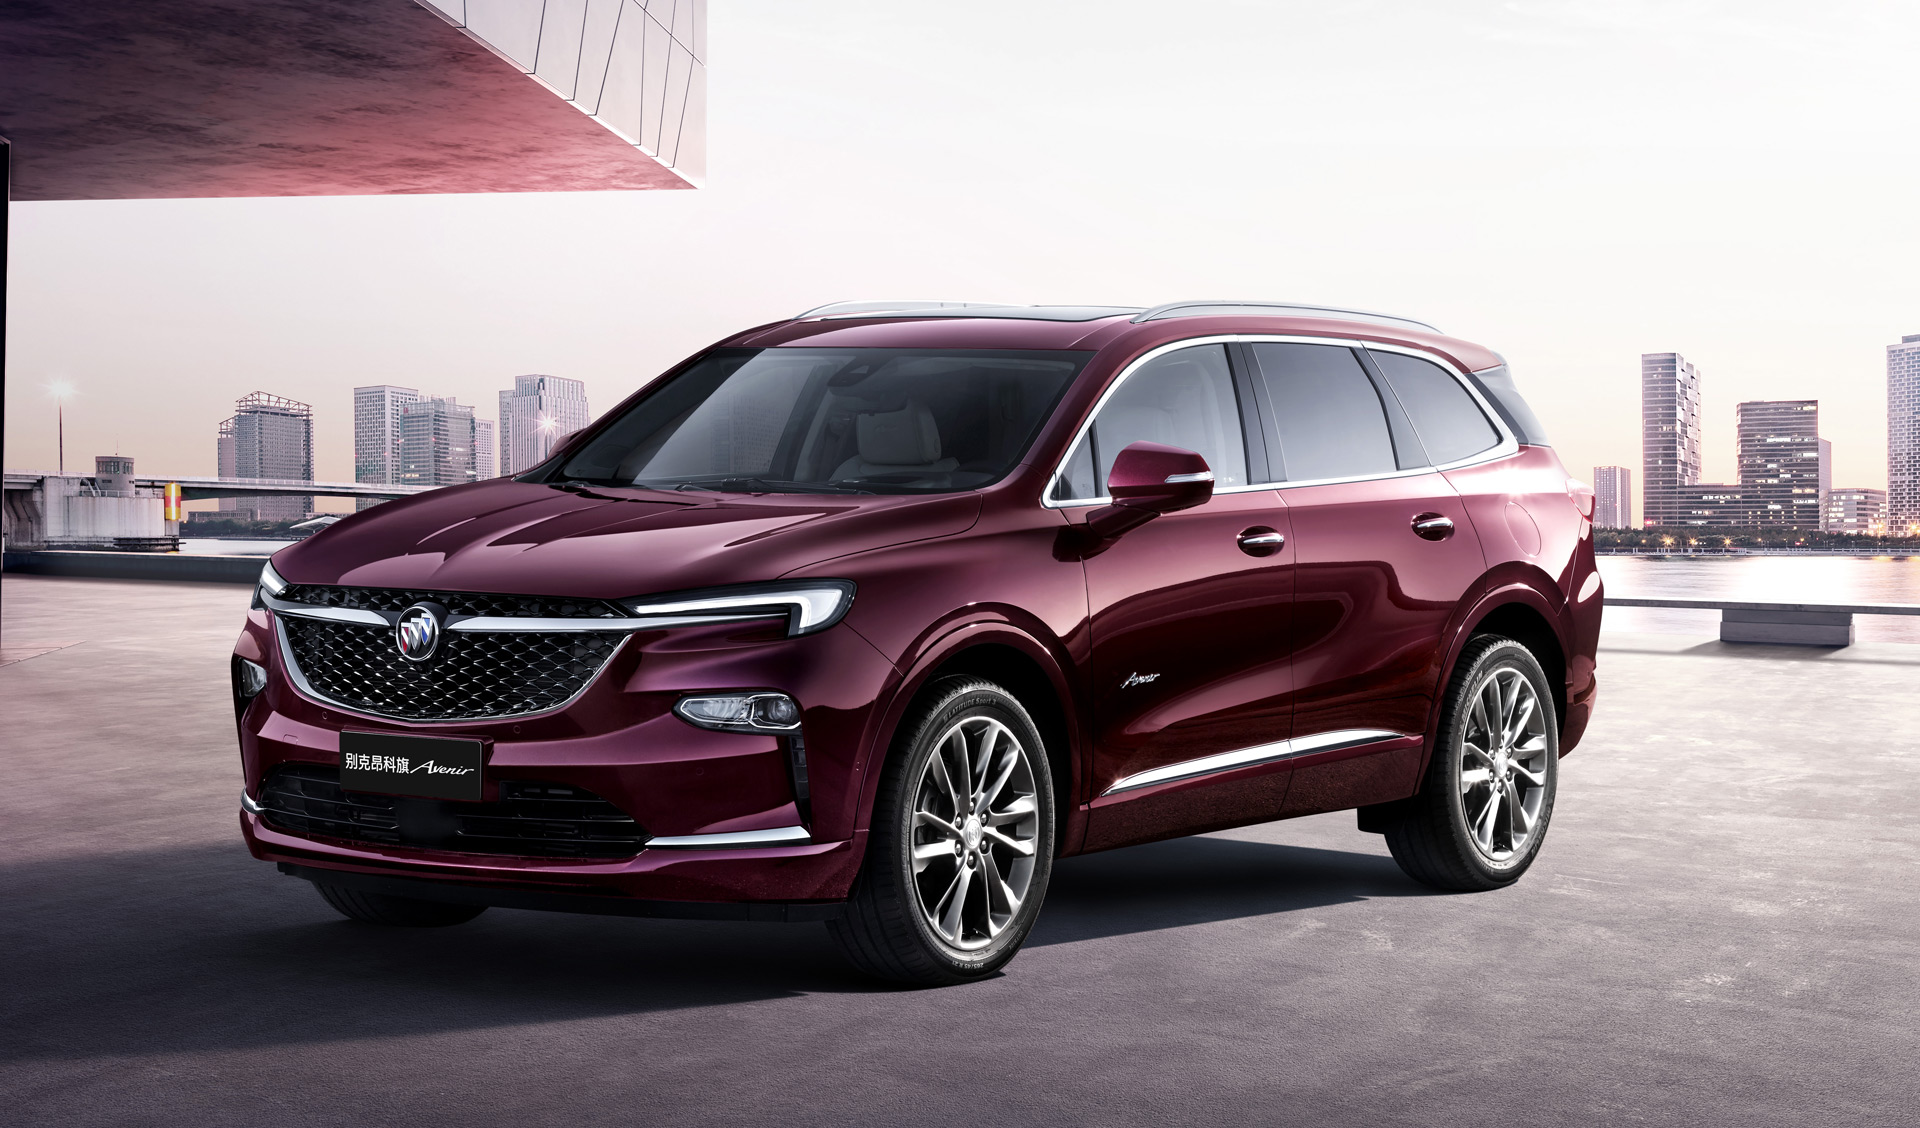 Mystery Buick 3-row crossover revealed as Chinese-market Enclave